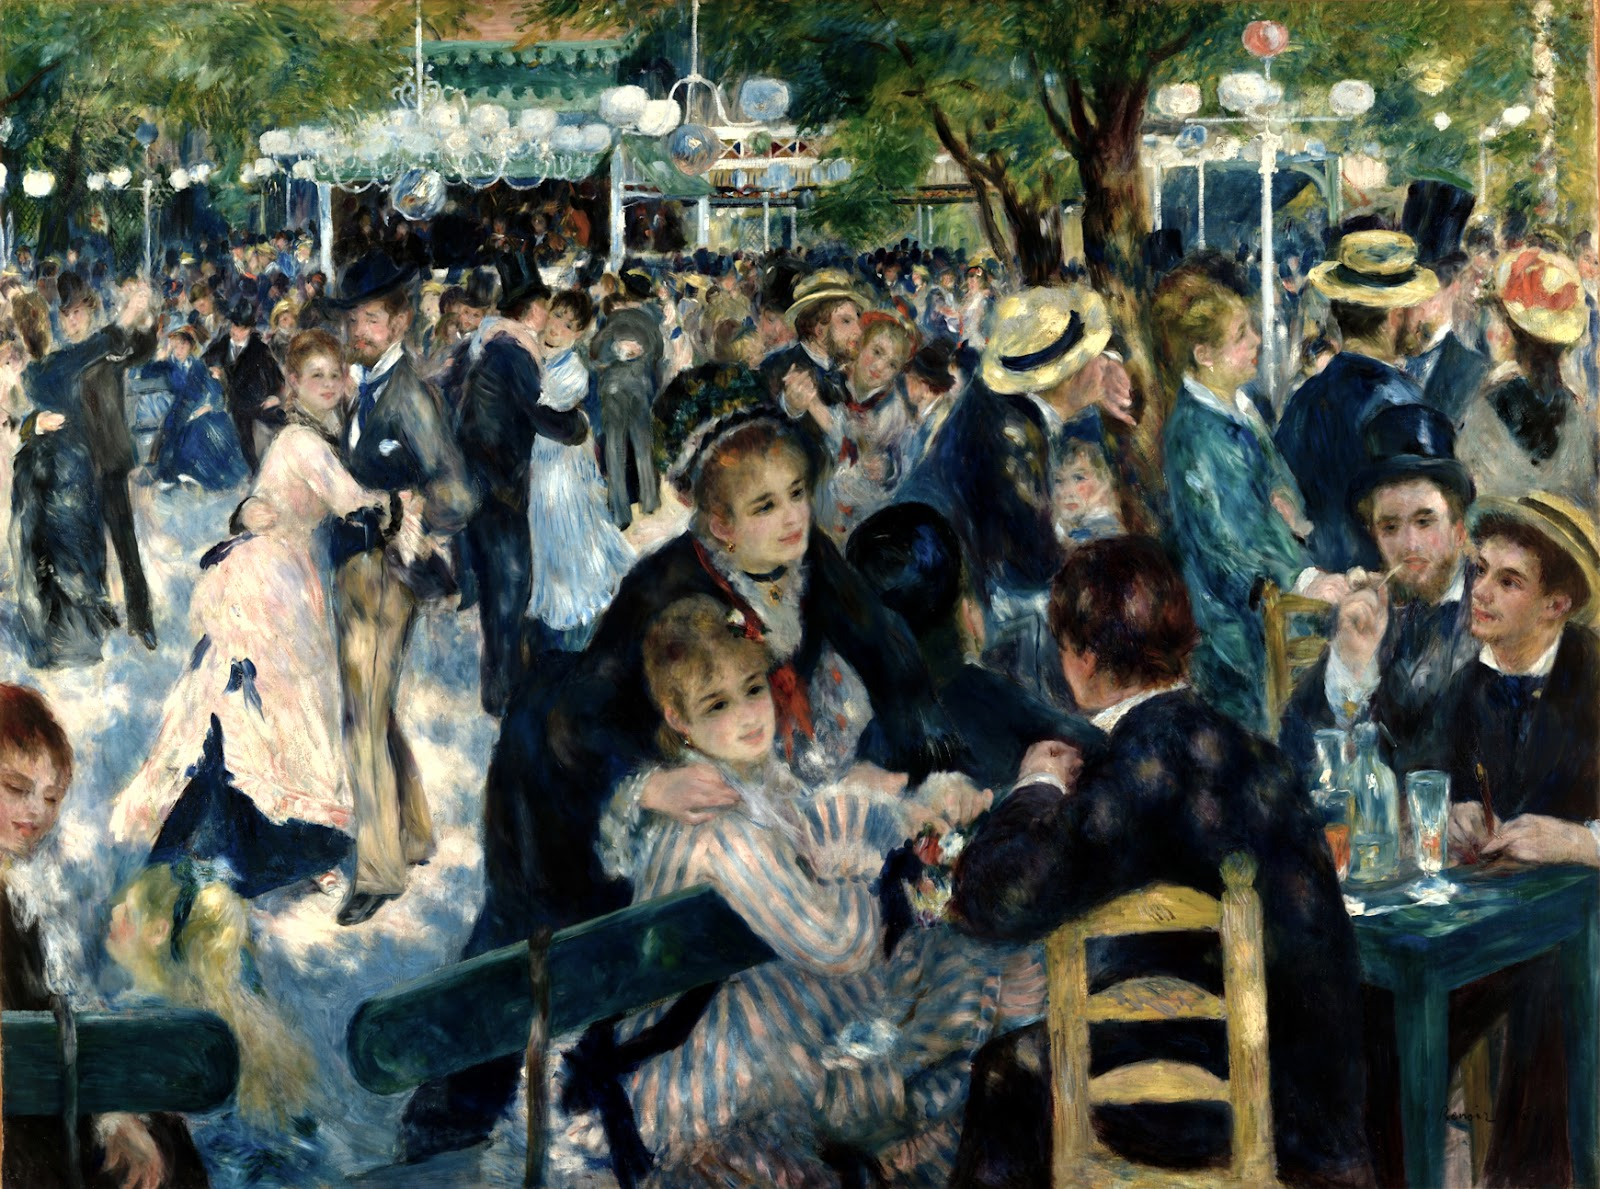 Bal du moulin de la Galette - Auguste Renoir (1876), oil on canvas